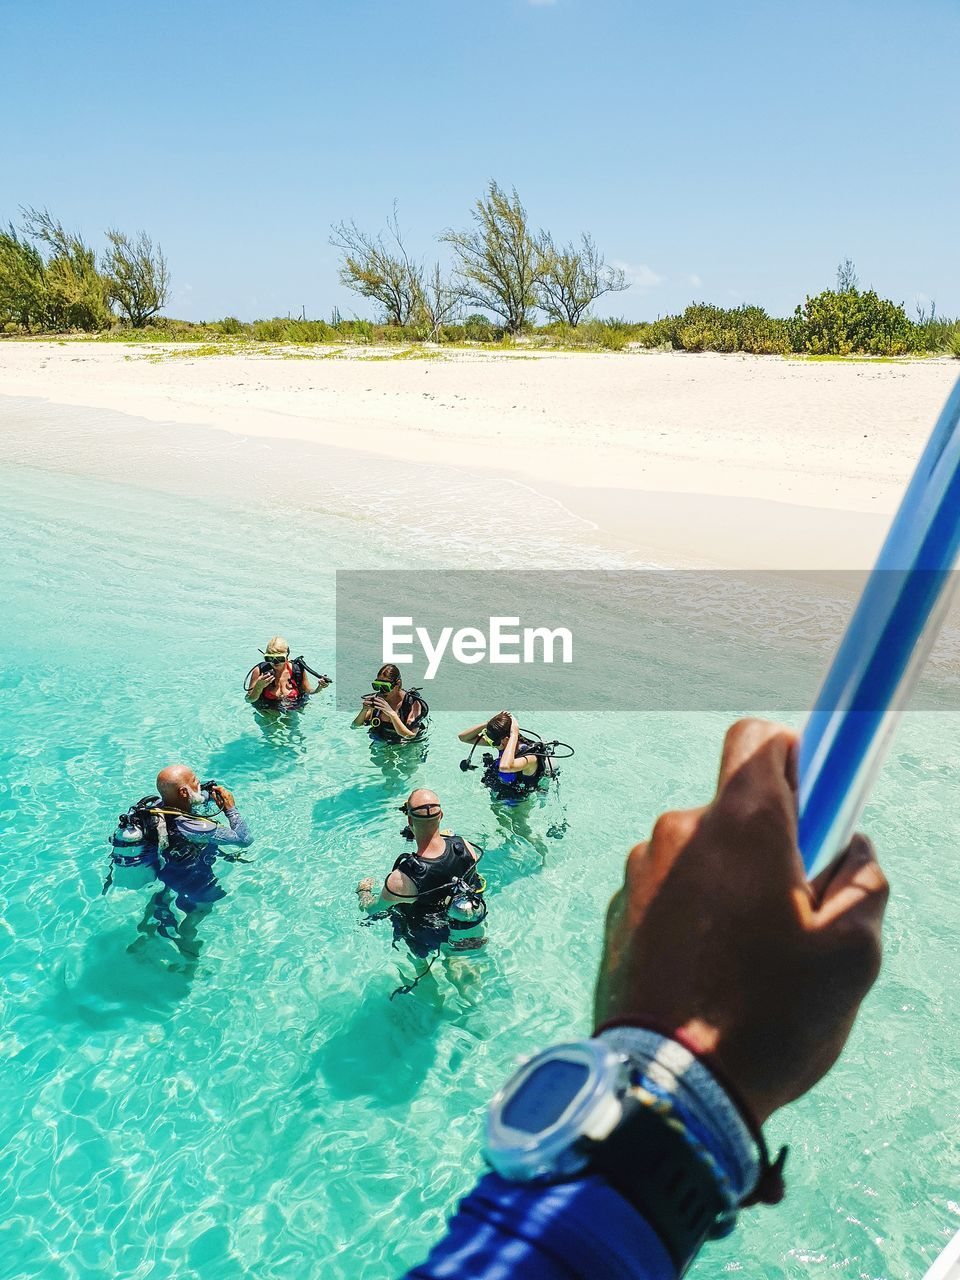 water, real people, sea, leisure activity, lifestyles, sky, land, nature, day, men, group of people, people, beach, aquatic sport, holiday, clear sky, sport, trip, beauty in nature, outdoors